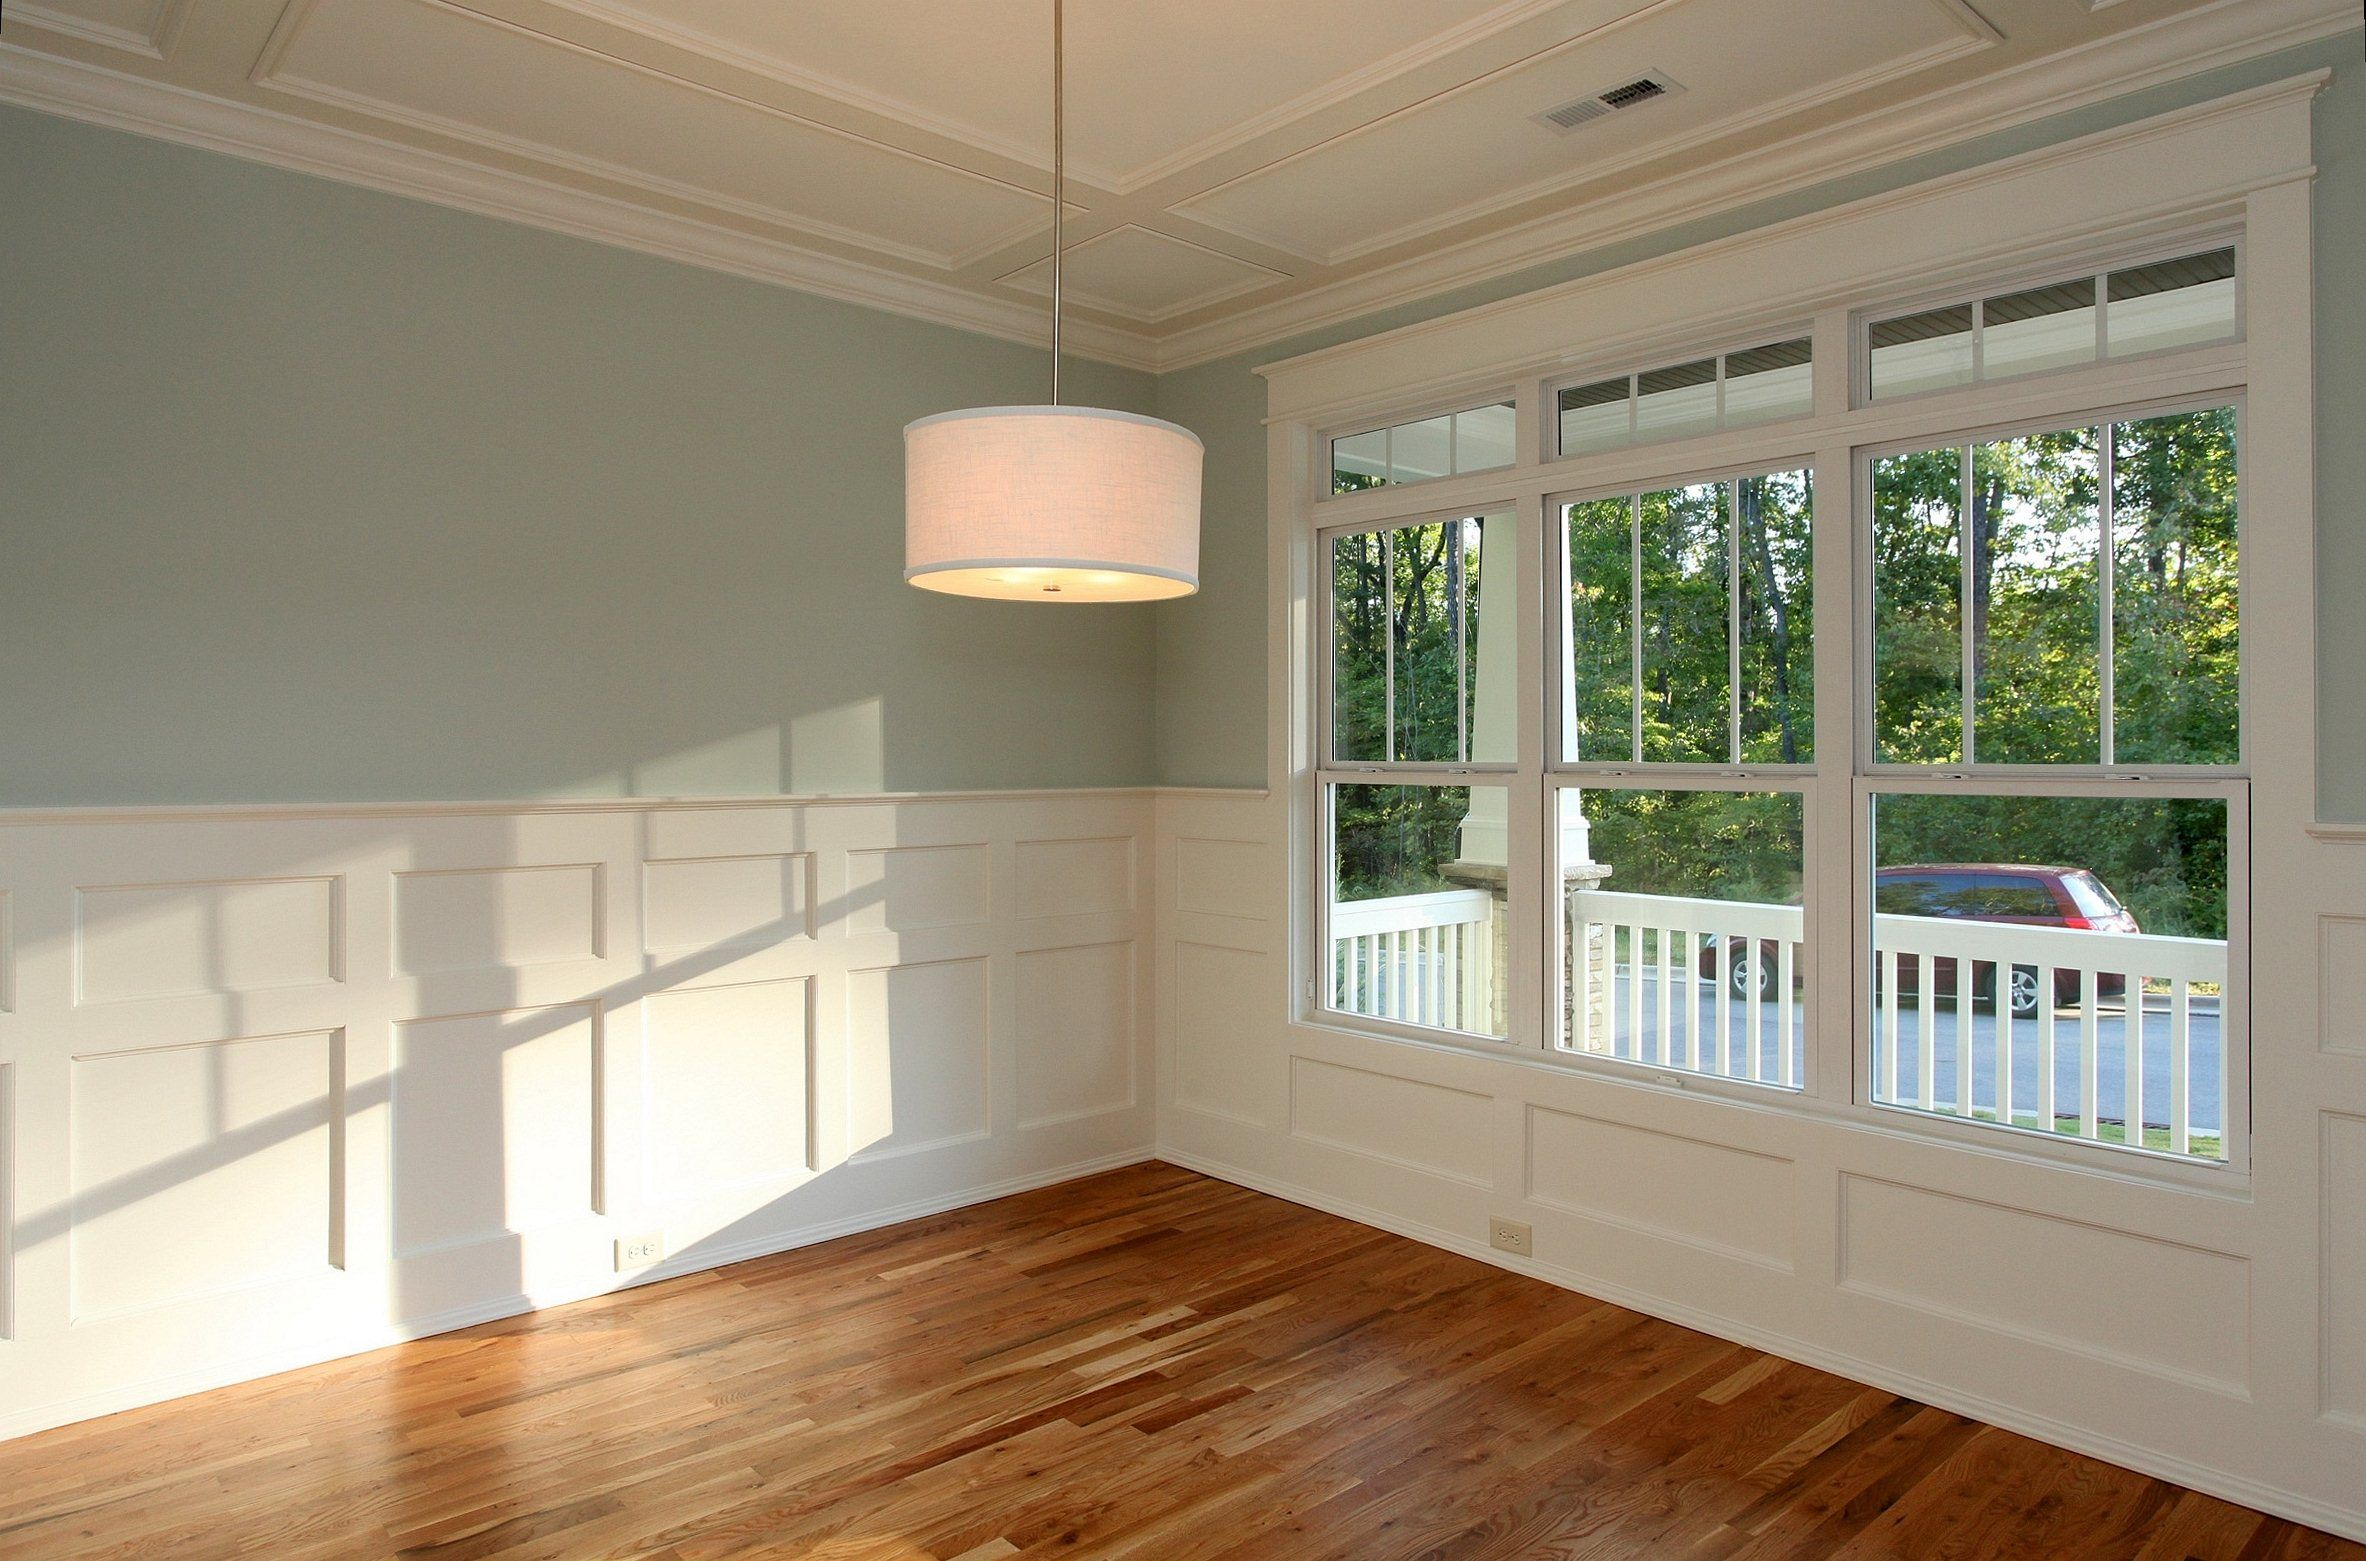 3 1 Window Pane Sequence The Dining Room In The Franklin Craftman Built By Homes By Dickerson Dining Room Windows Dining Room Wainscoting Craftsman Windows